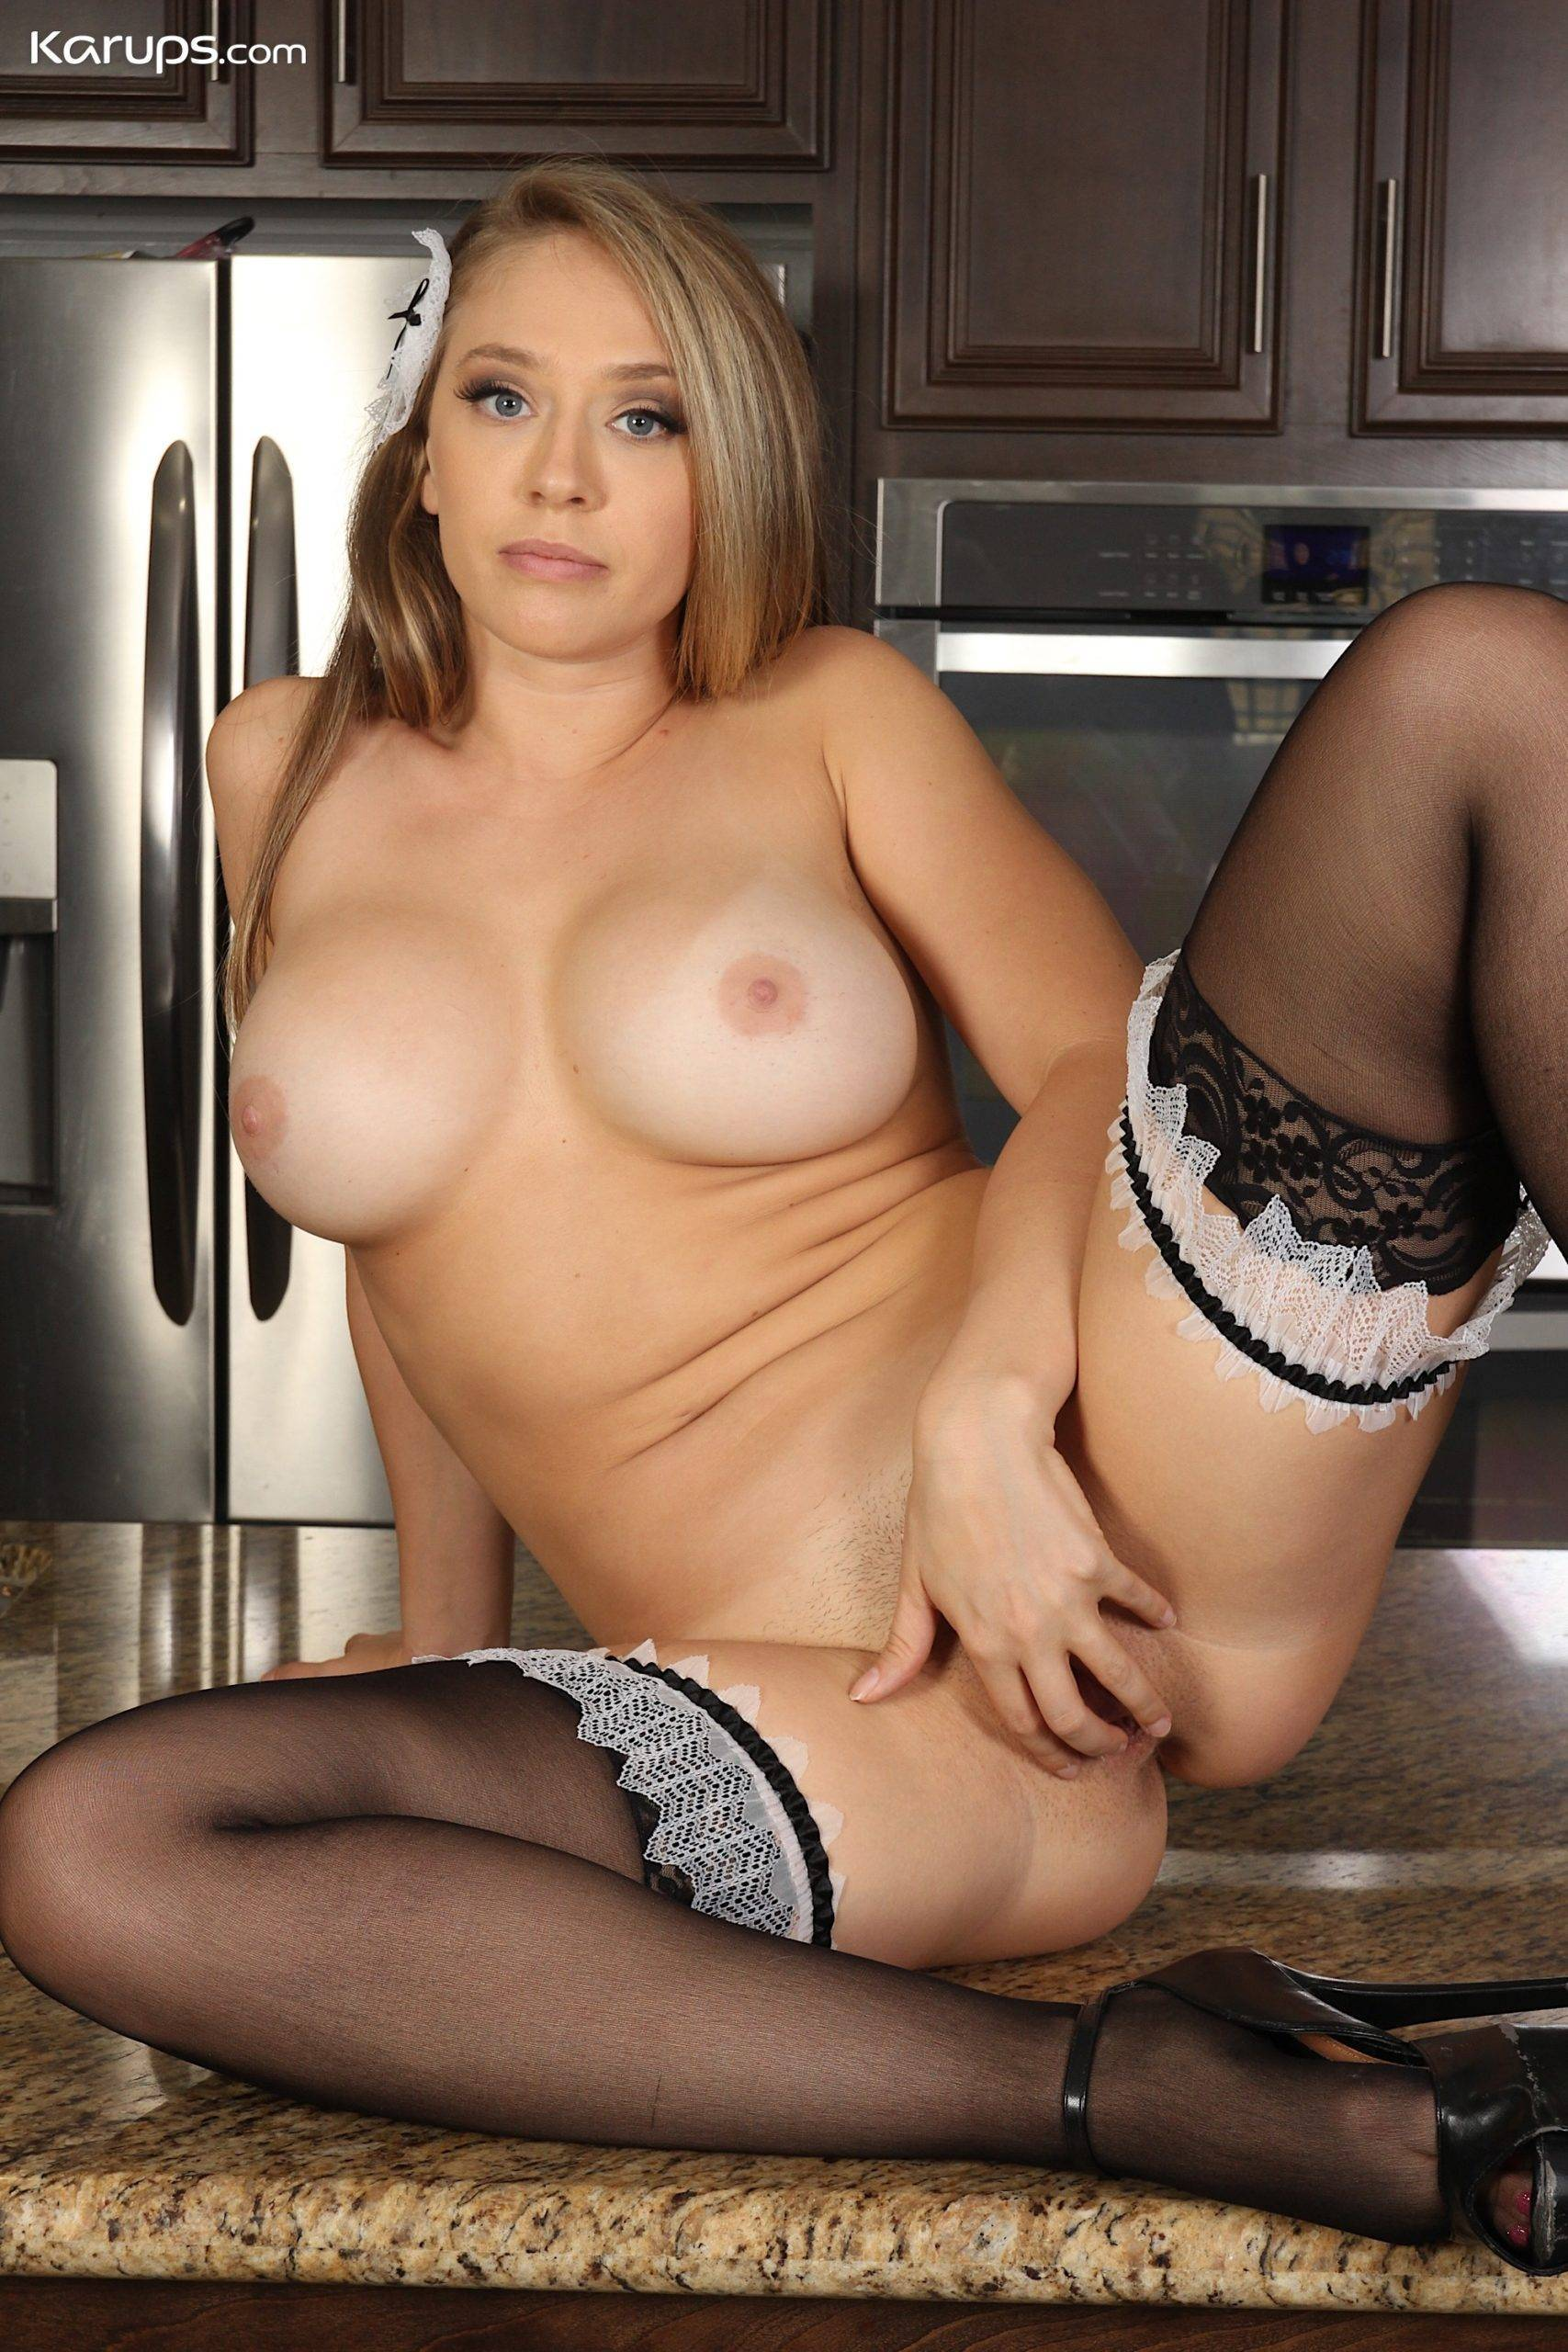 Sexy French maid MILF Kagney Lynn Karter strips in the kitchen at Karupsow